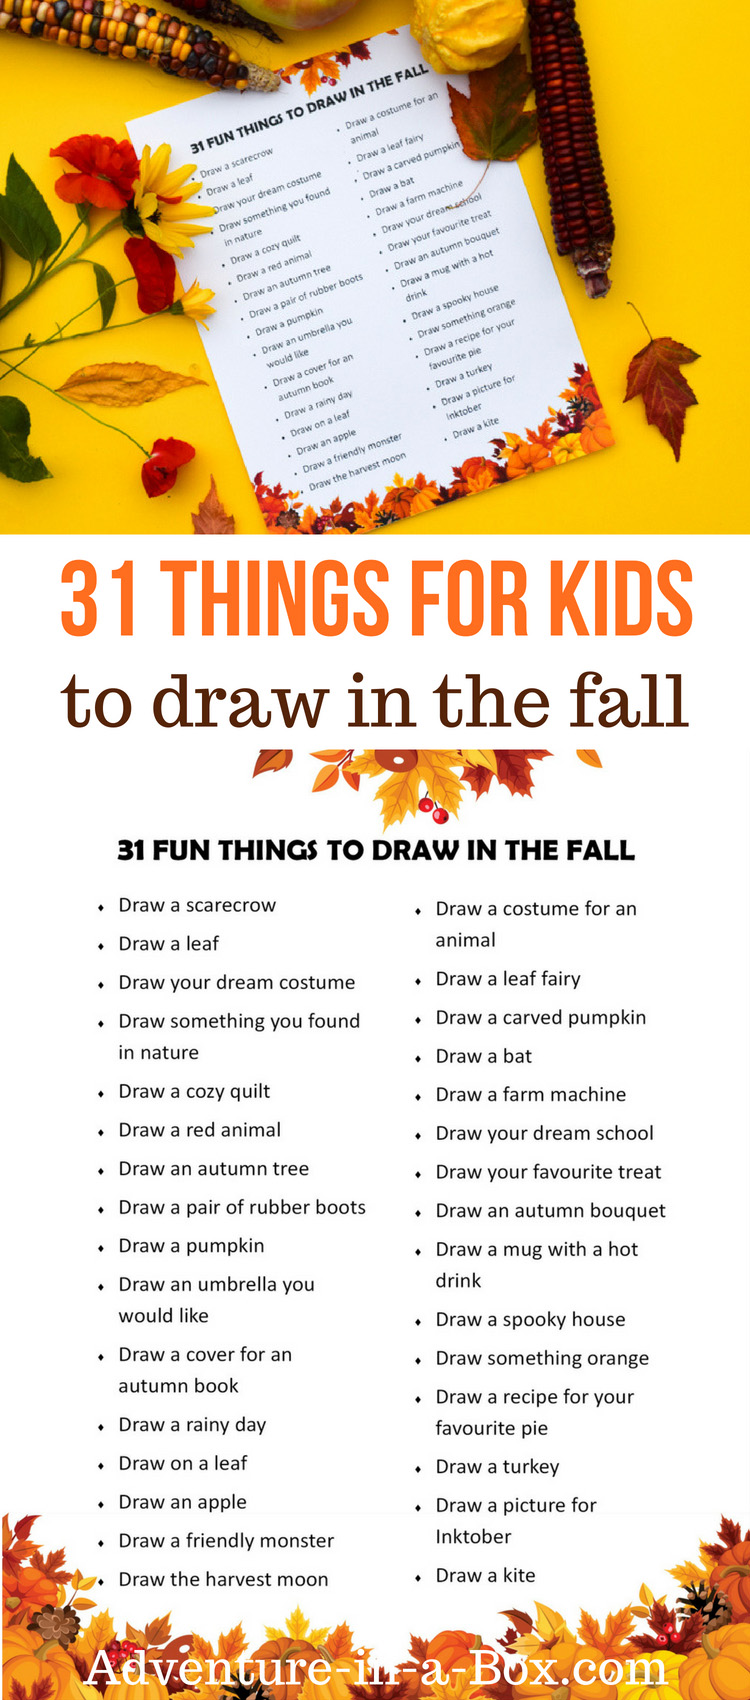 Are your kids wondering what to draw? Get this list of drawing challenges and fun things for kids to draw in the fall! #drawingaday #drawiingchallenge #drawing #kidsart #artteacher #homeschool